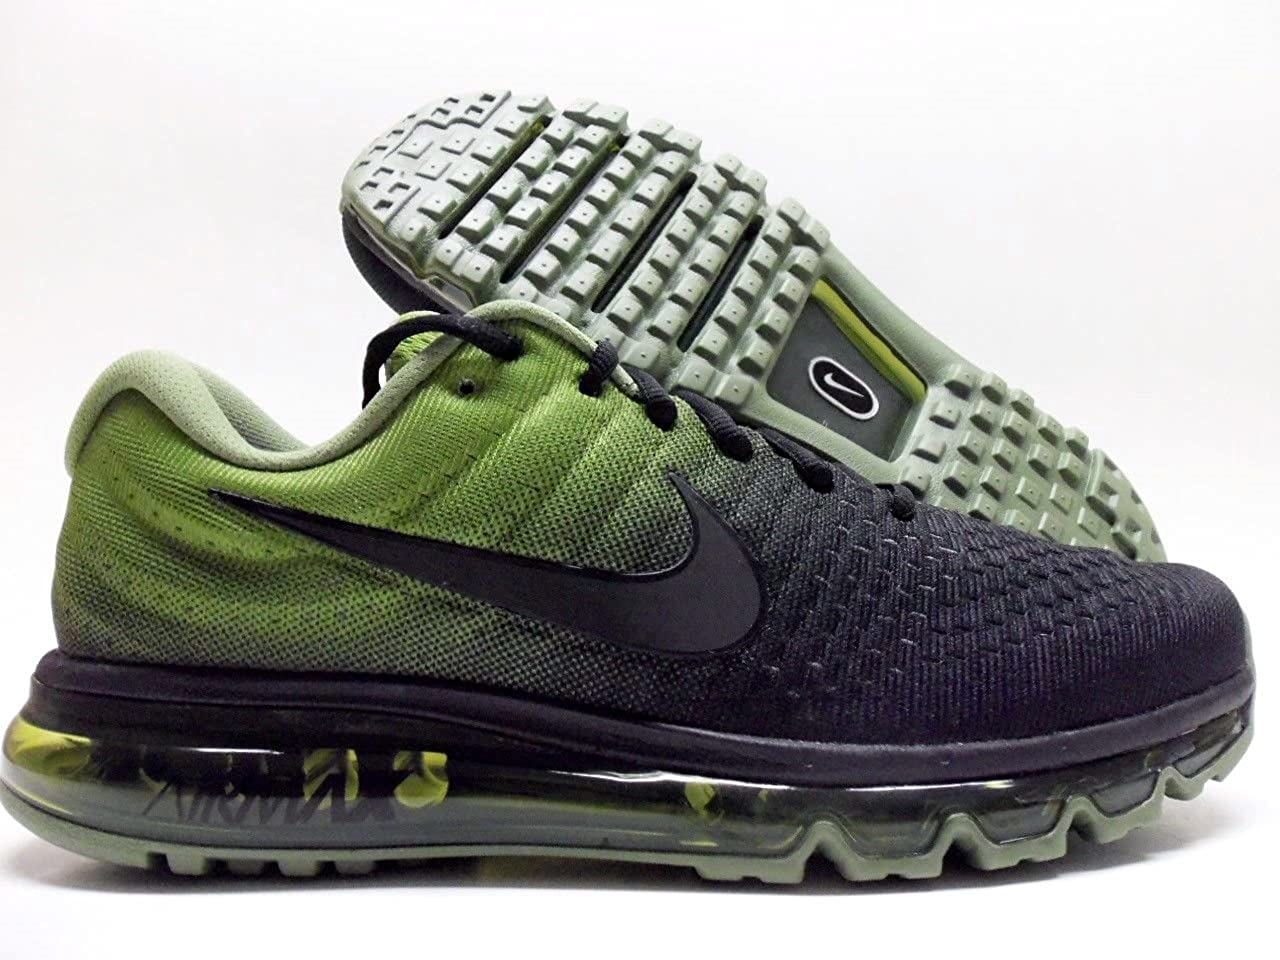 size 40 7e3fc 83879 Amazon.com | NIKE AIR Max 2017 New Black/Green [ 849559-006 ...